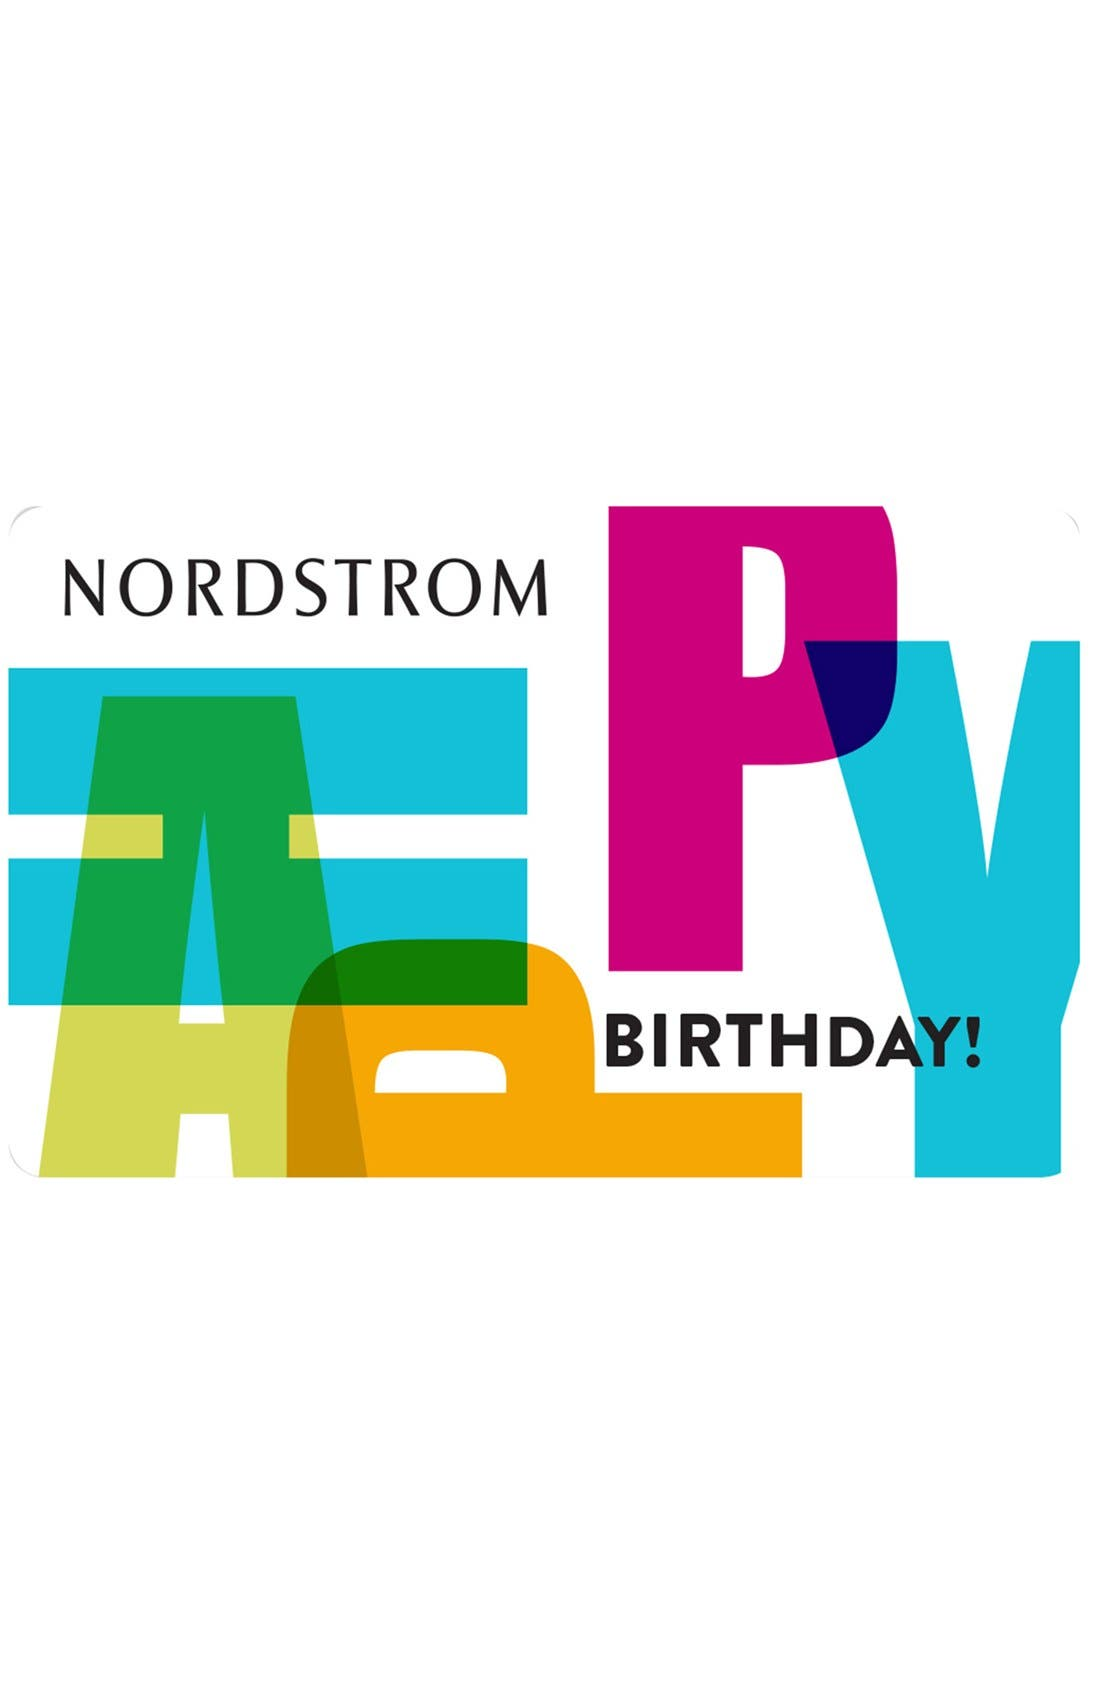 Nordstrom Happy Birthday Greeting Card & Gift Card